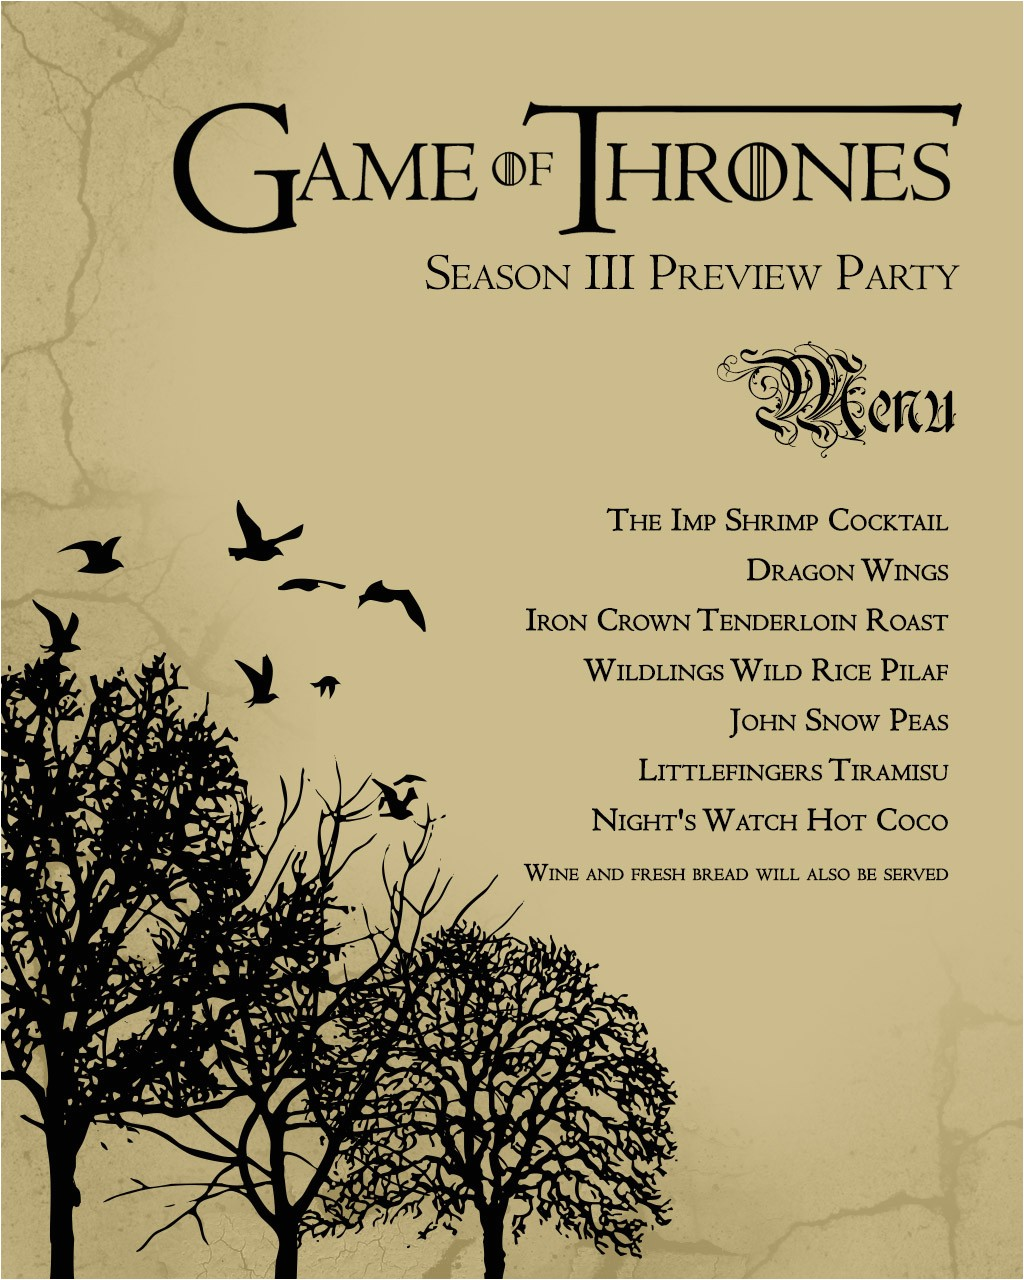 game of thrones s3 preview party